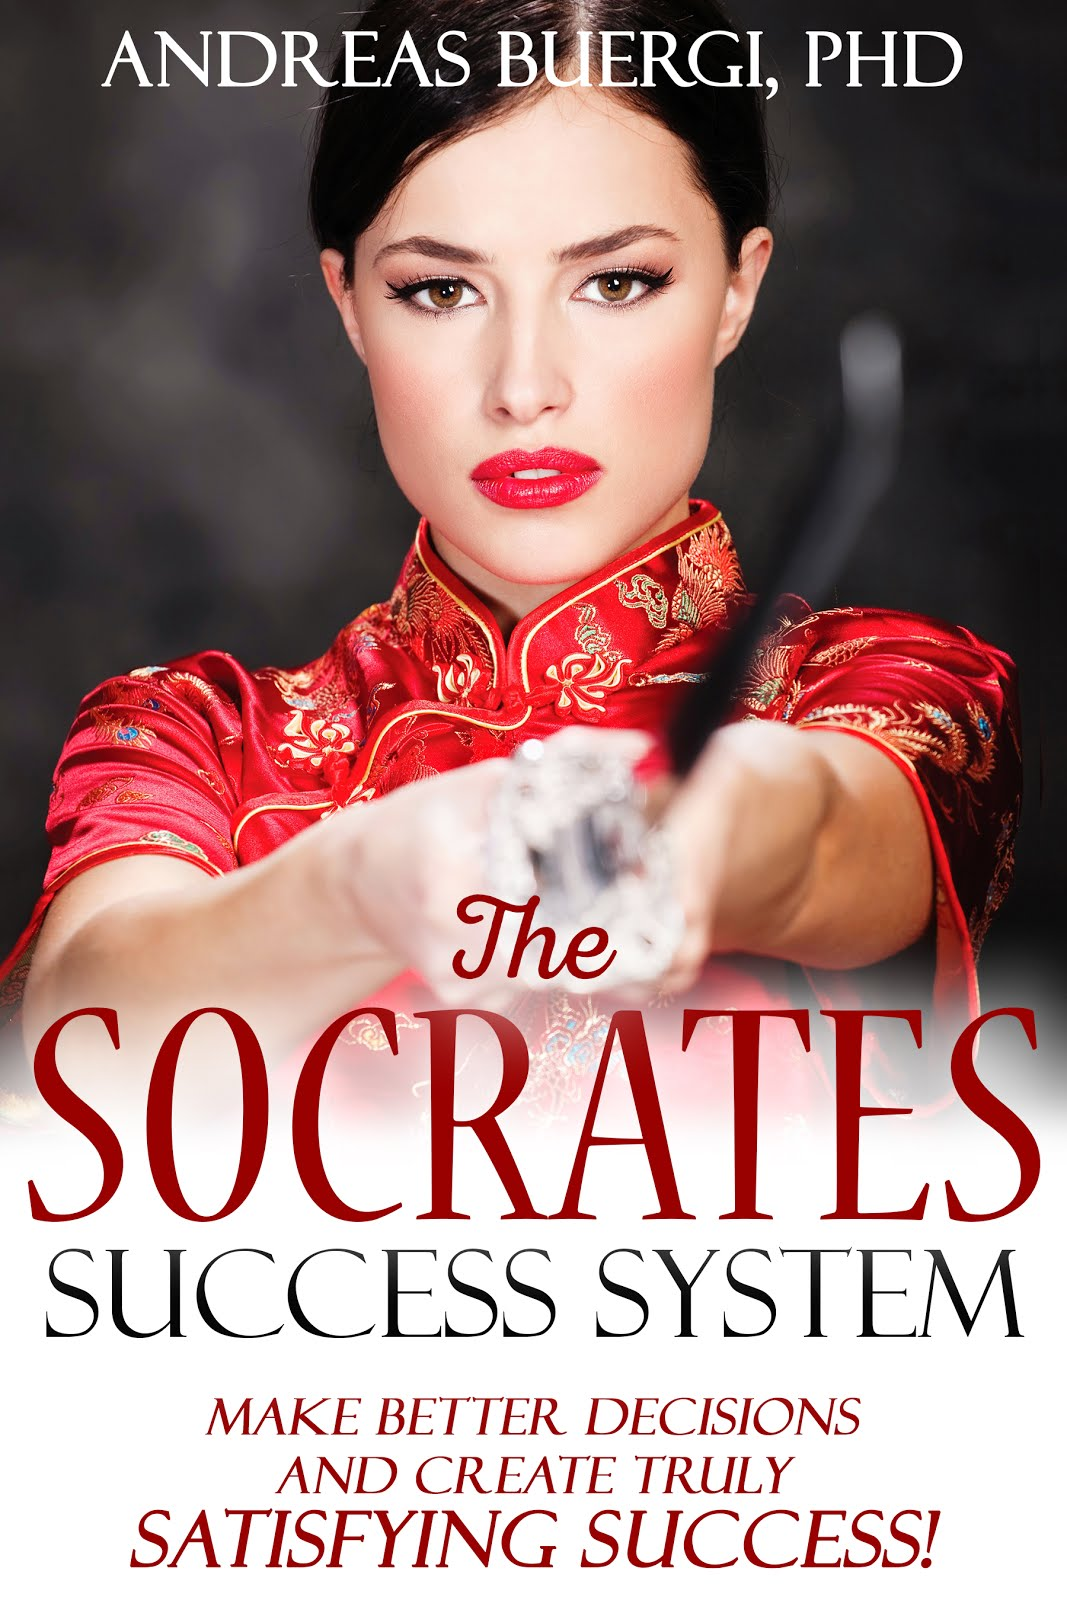 The SOCRATES Success System